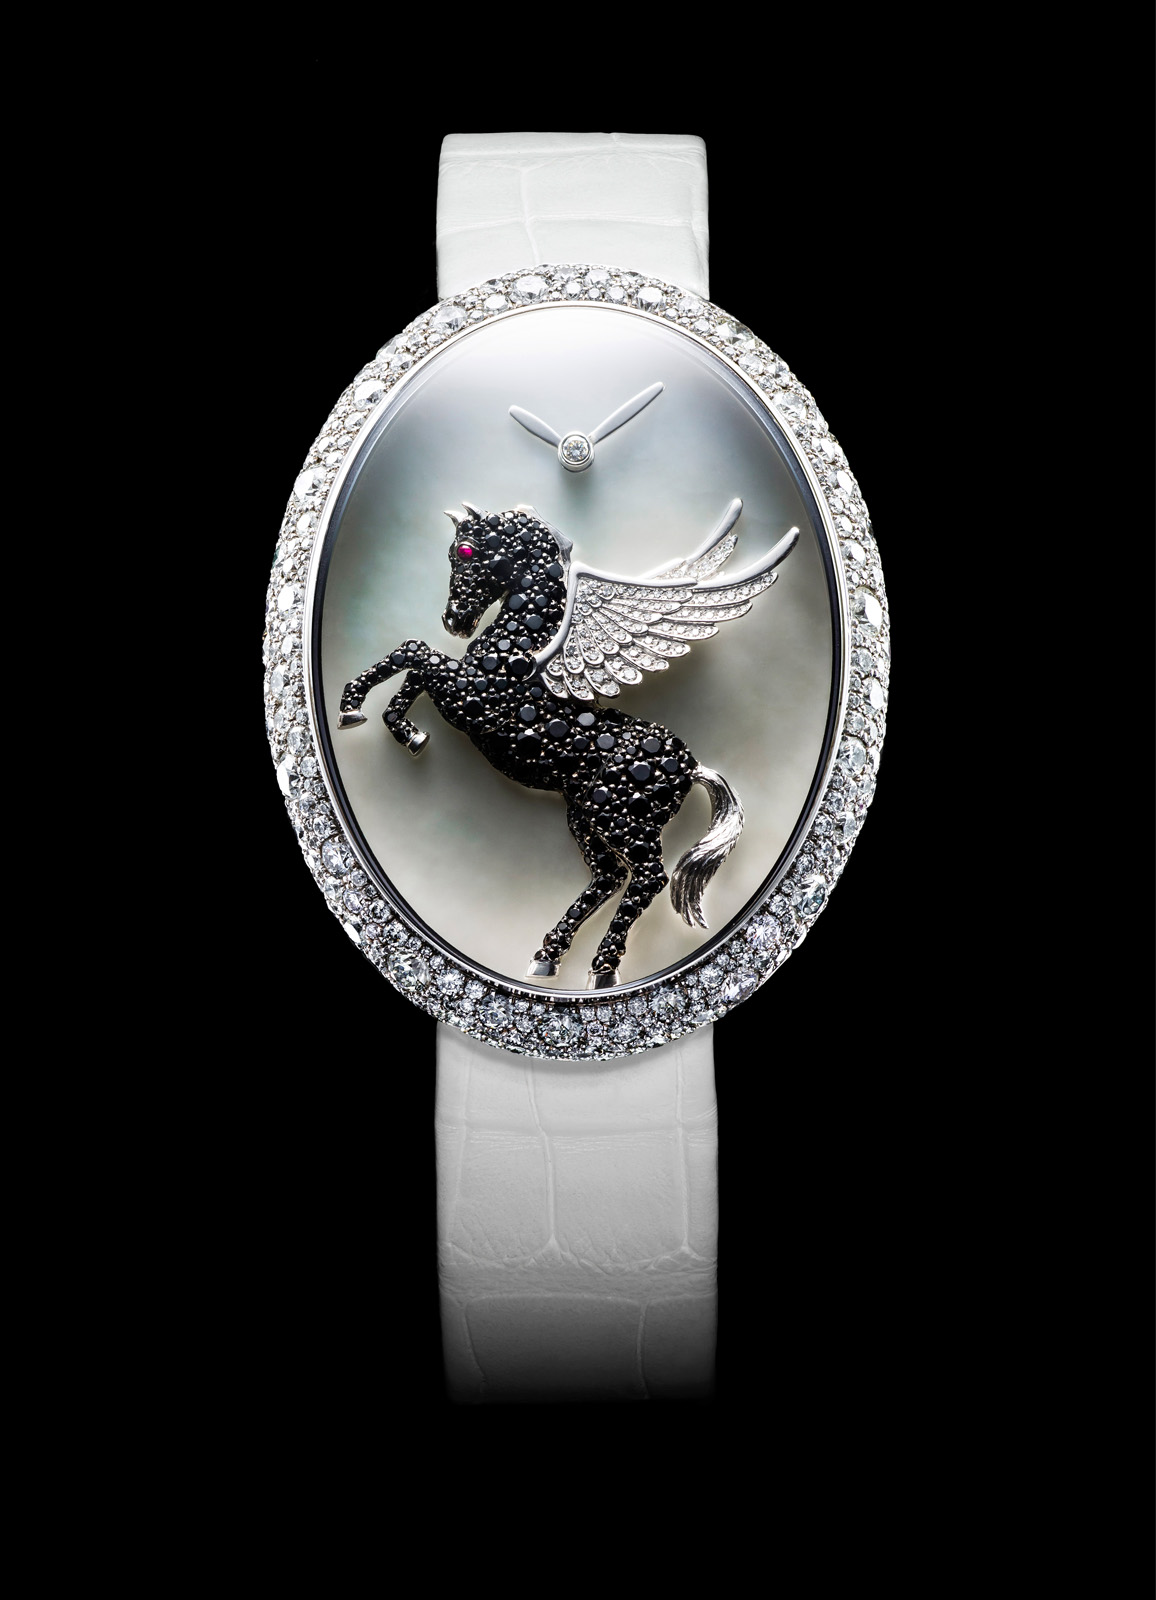 Van 'T Hoff Pegasus Art Watch